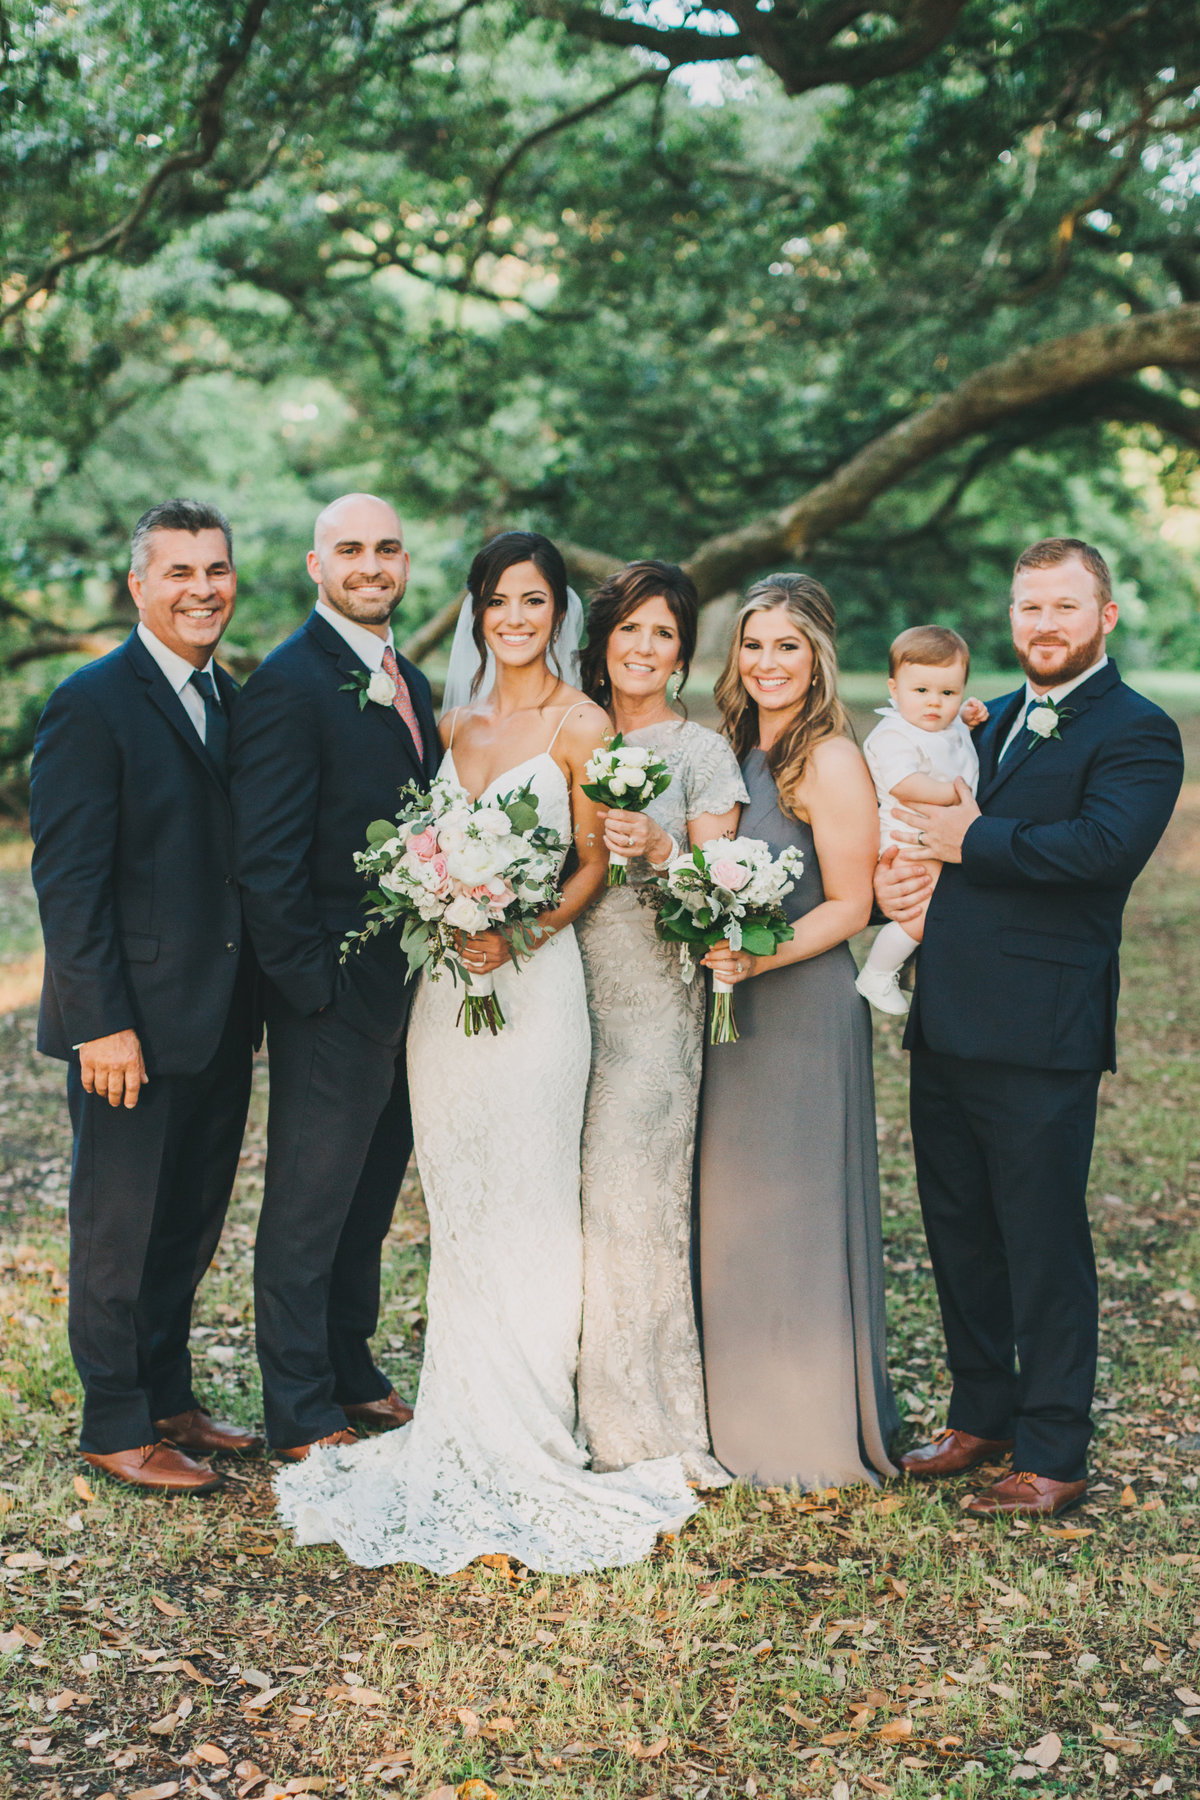 LauroWedding_FamilyPortraits-34